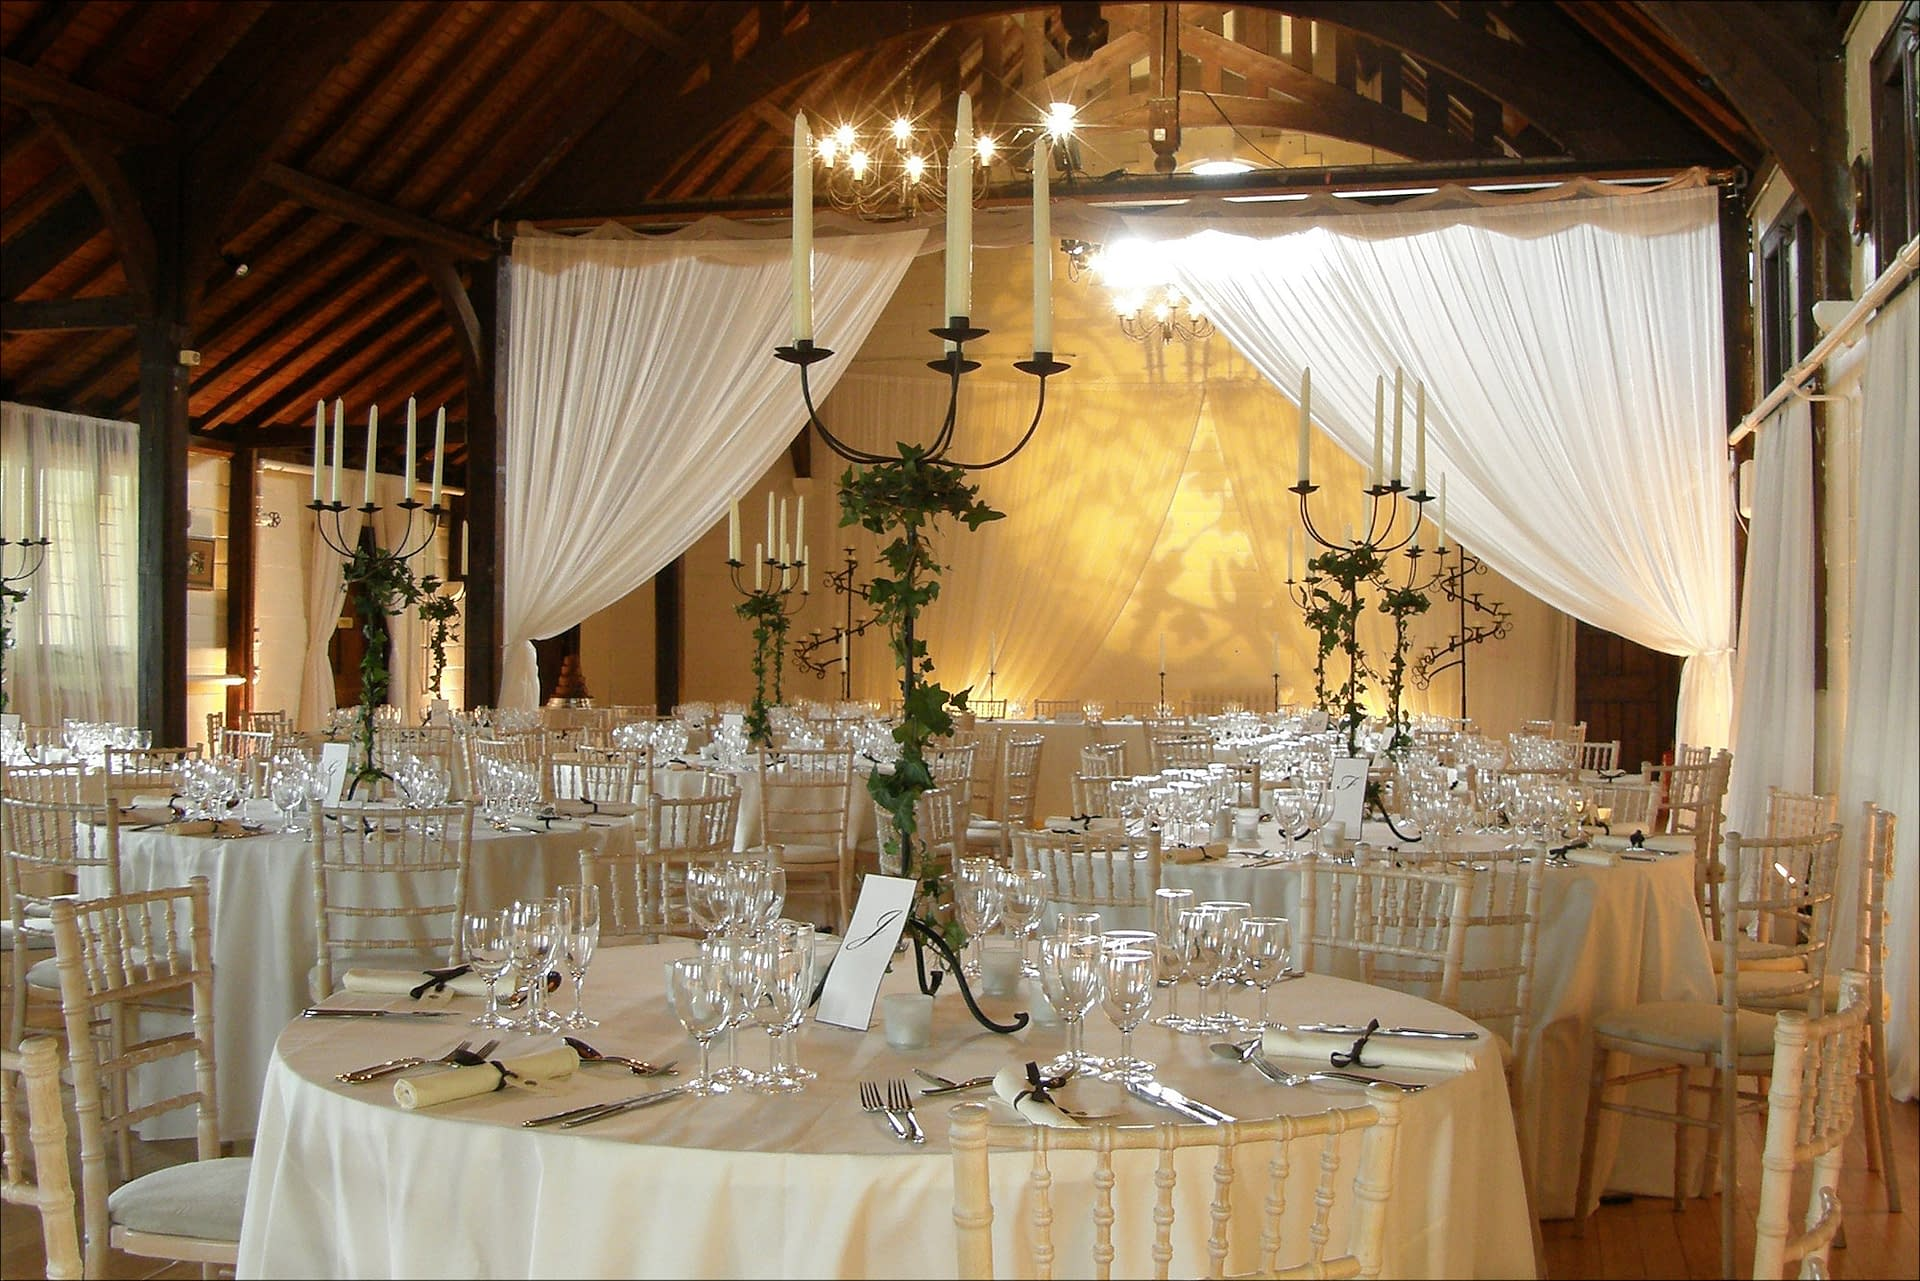 Partition drapes, subtle amber lighting plus floor-standing and table candelabra at Worfield Village Hall wedding venue UK